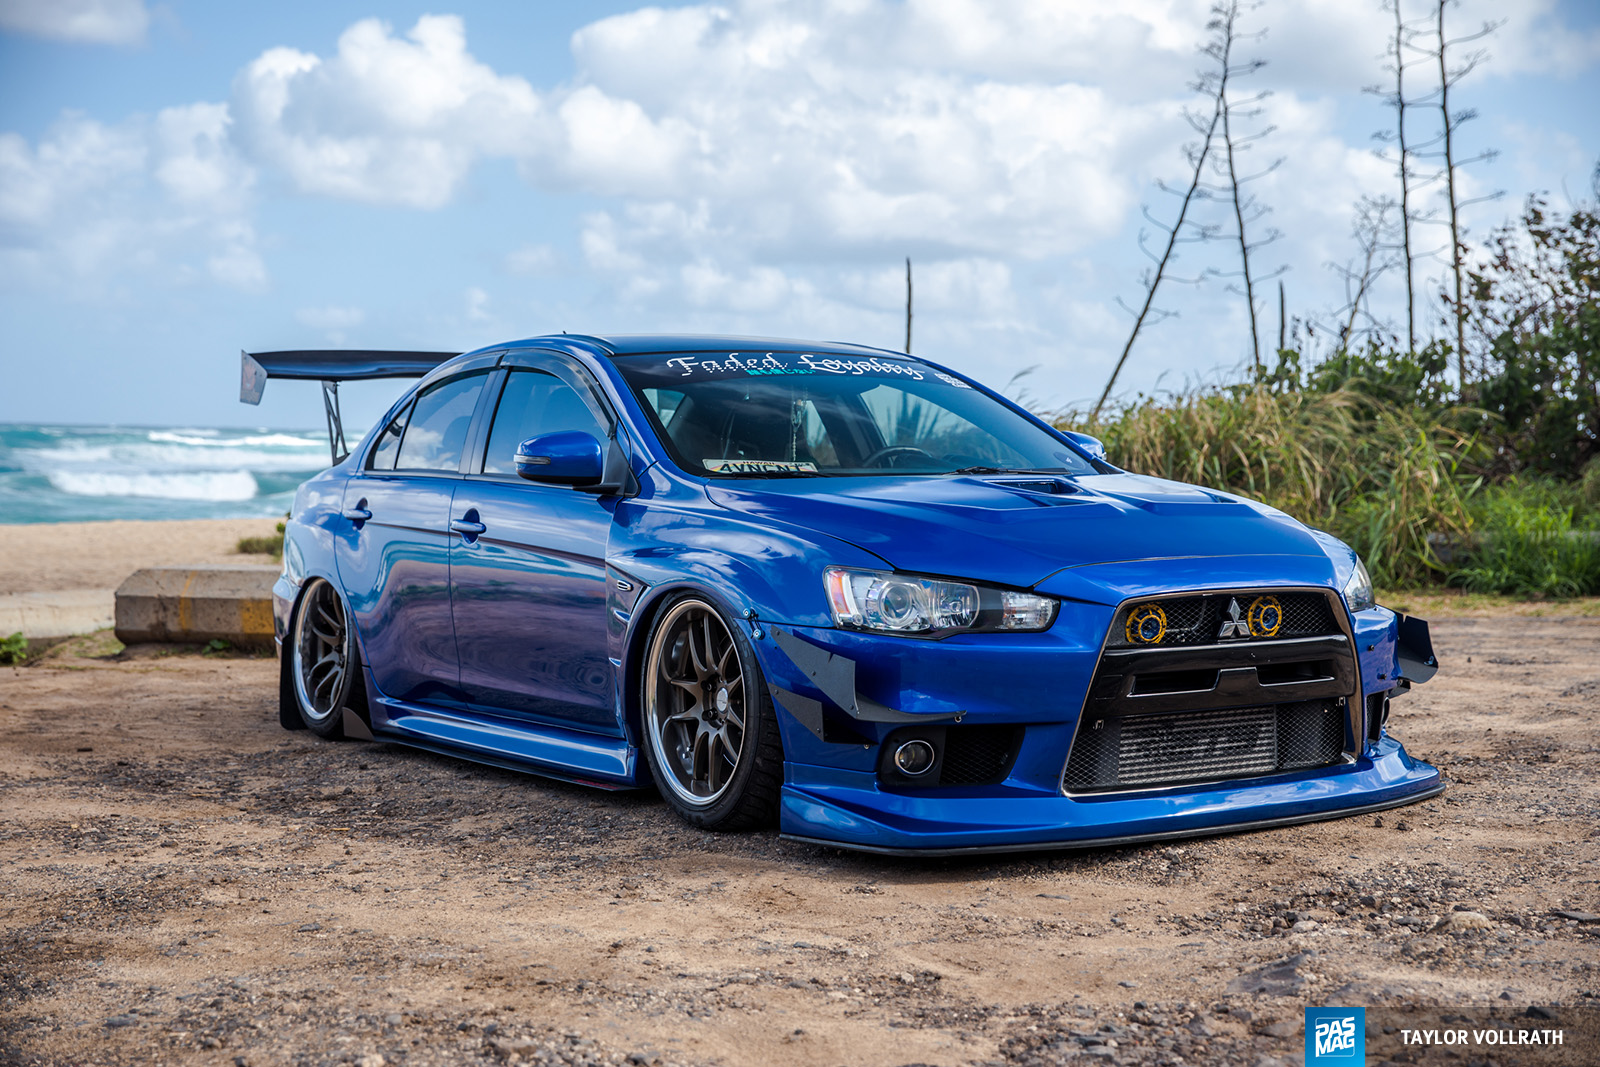 35 JM Andrada 2015 Mitsubishi Evolution X PASMAG Tuner Battlegrounds